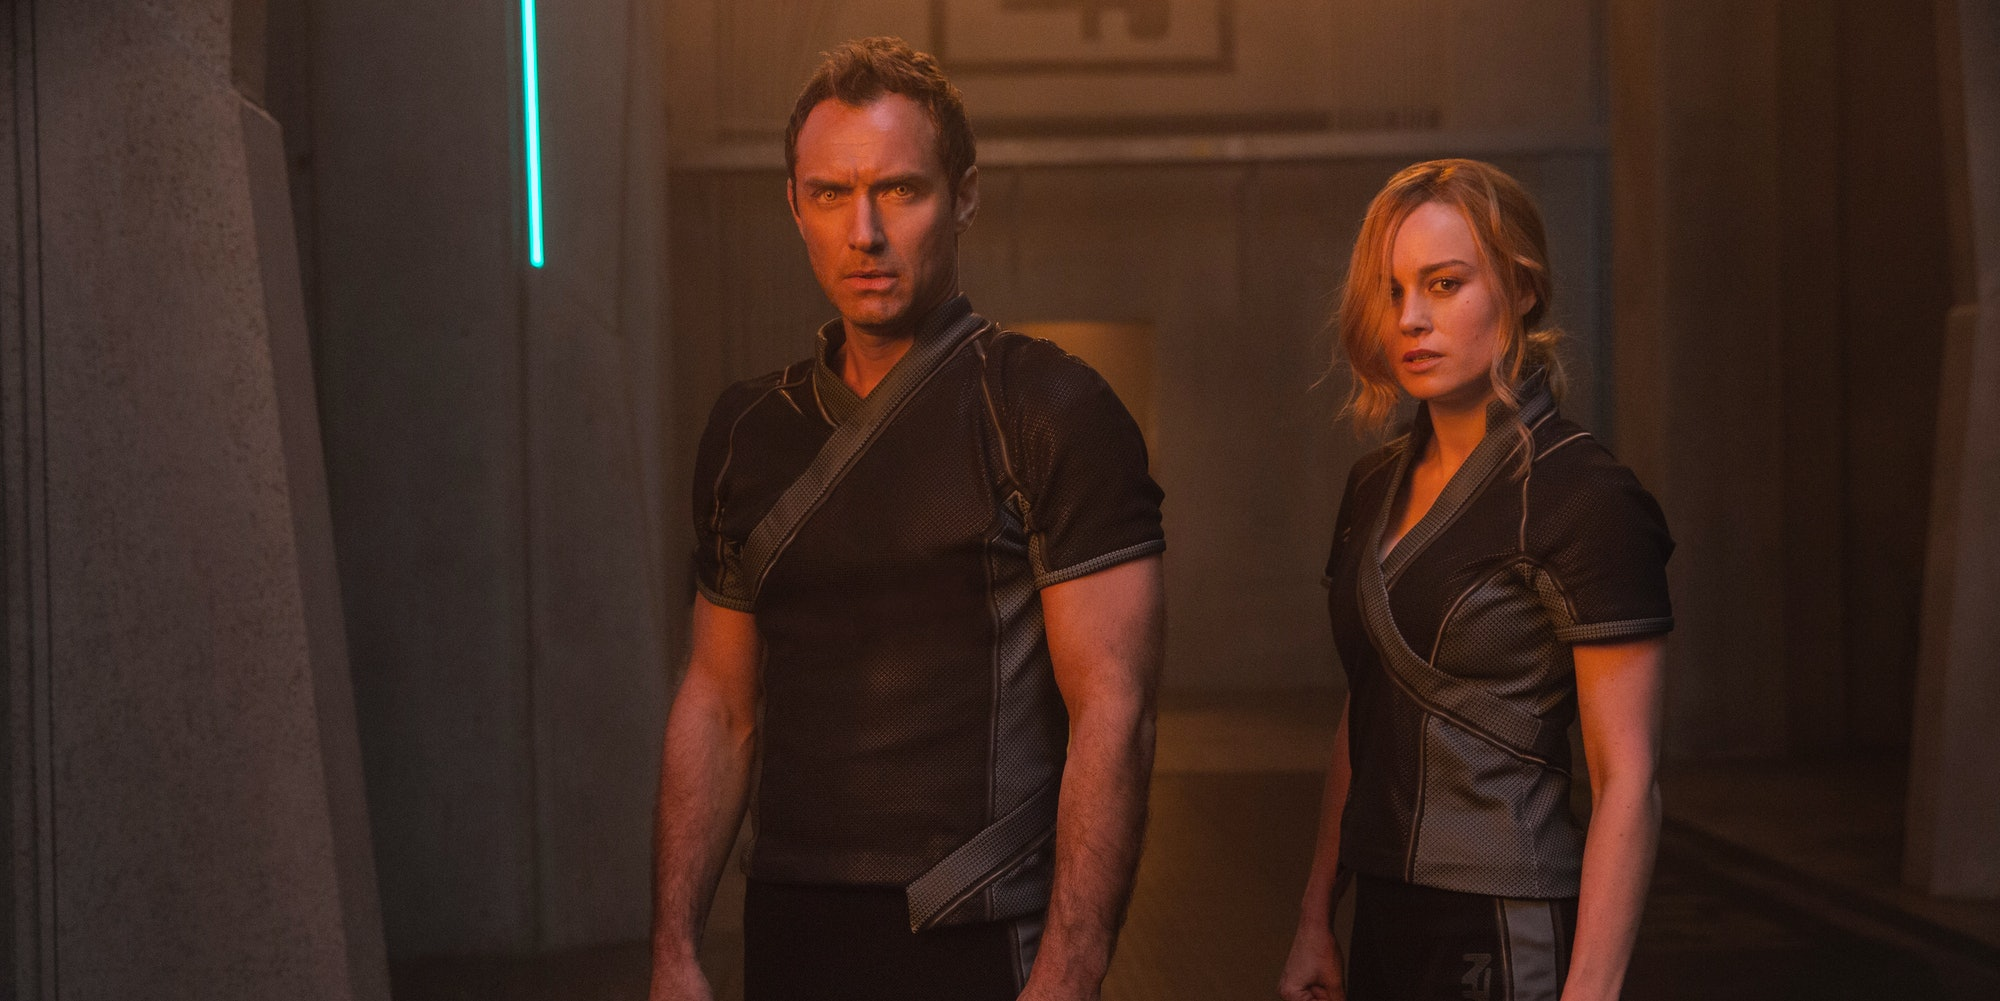 'Captain Marvel' Jude Law and Brie Larson